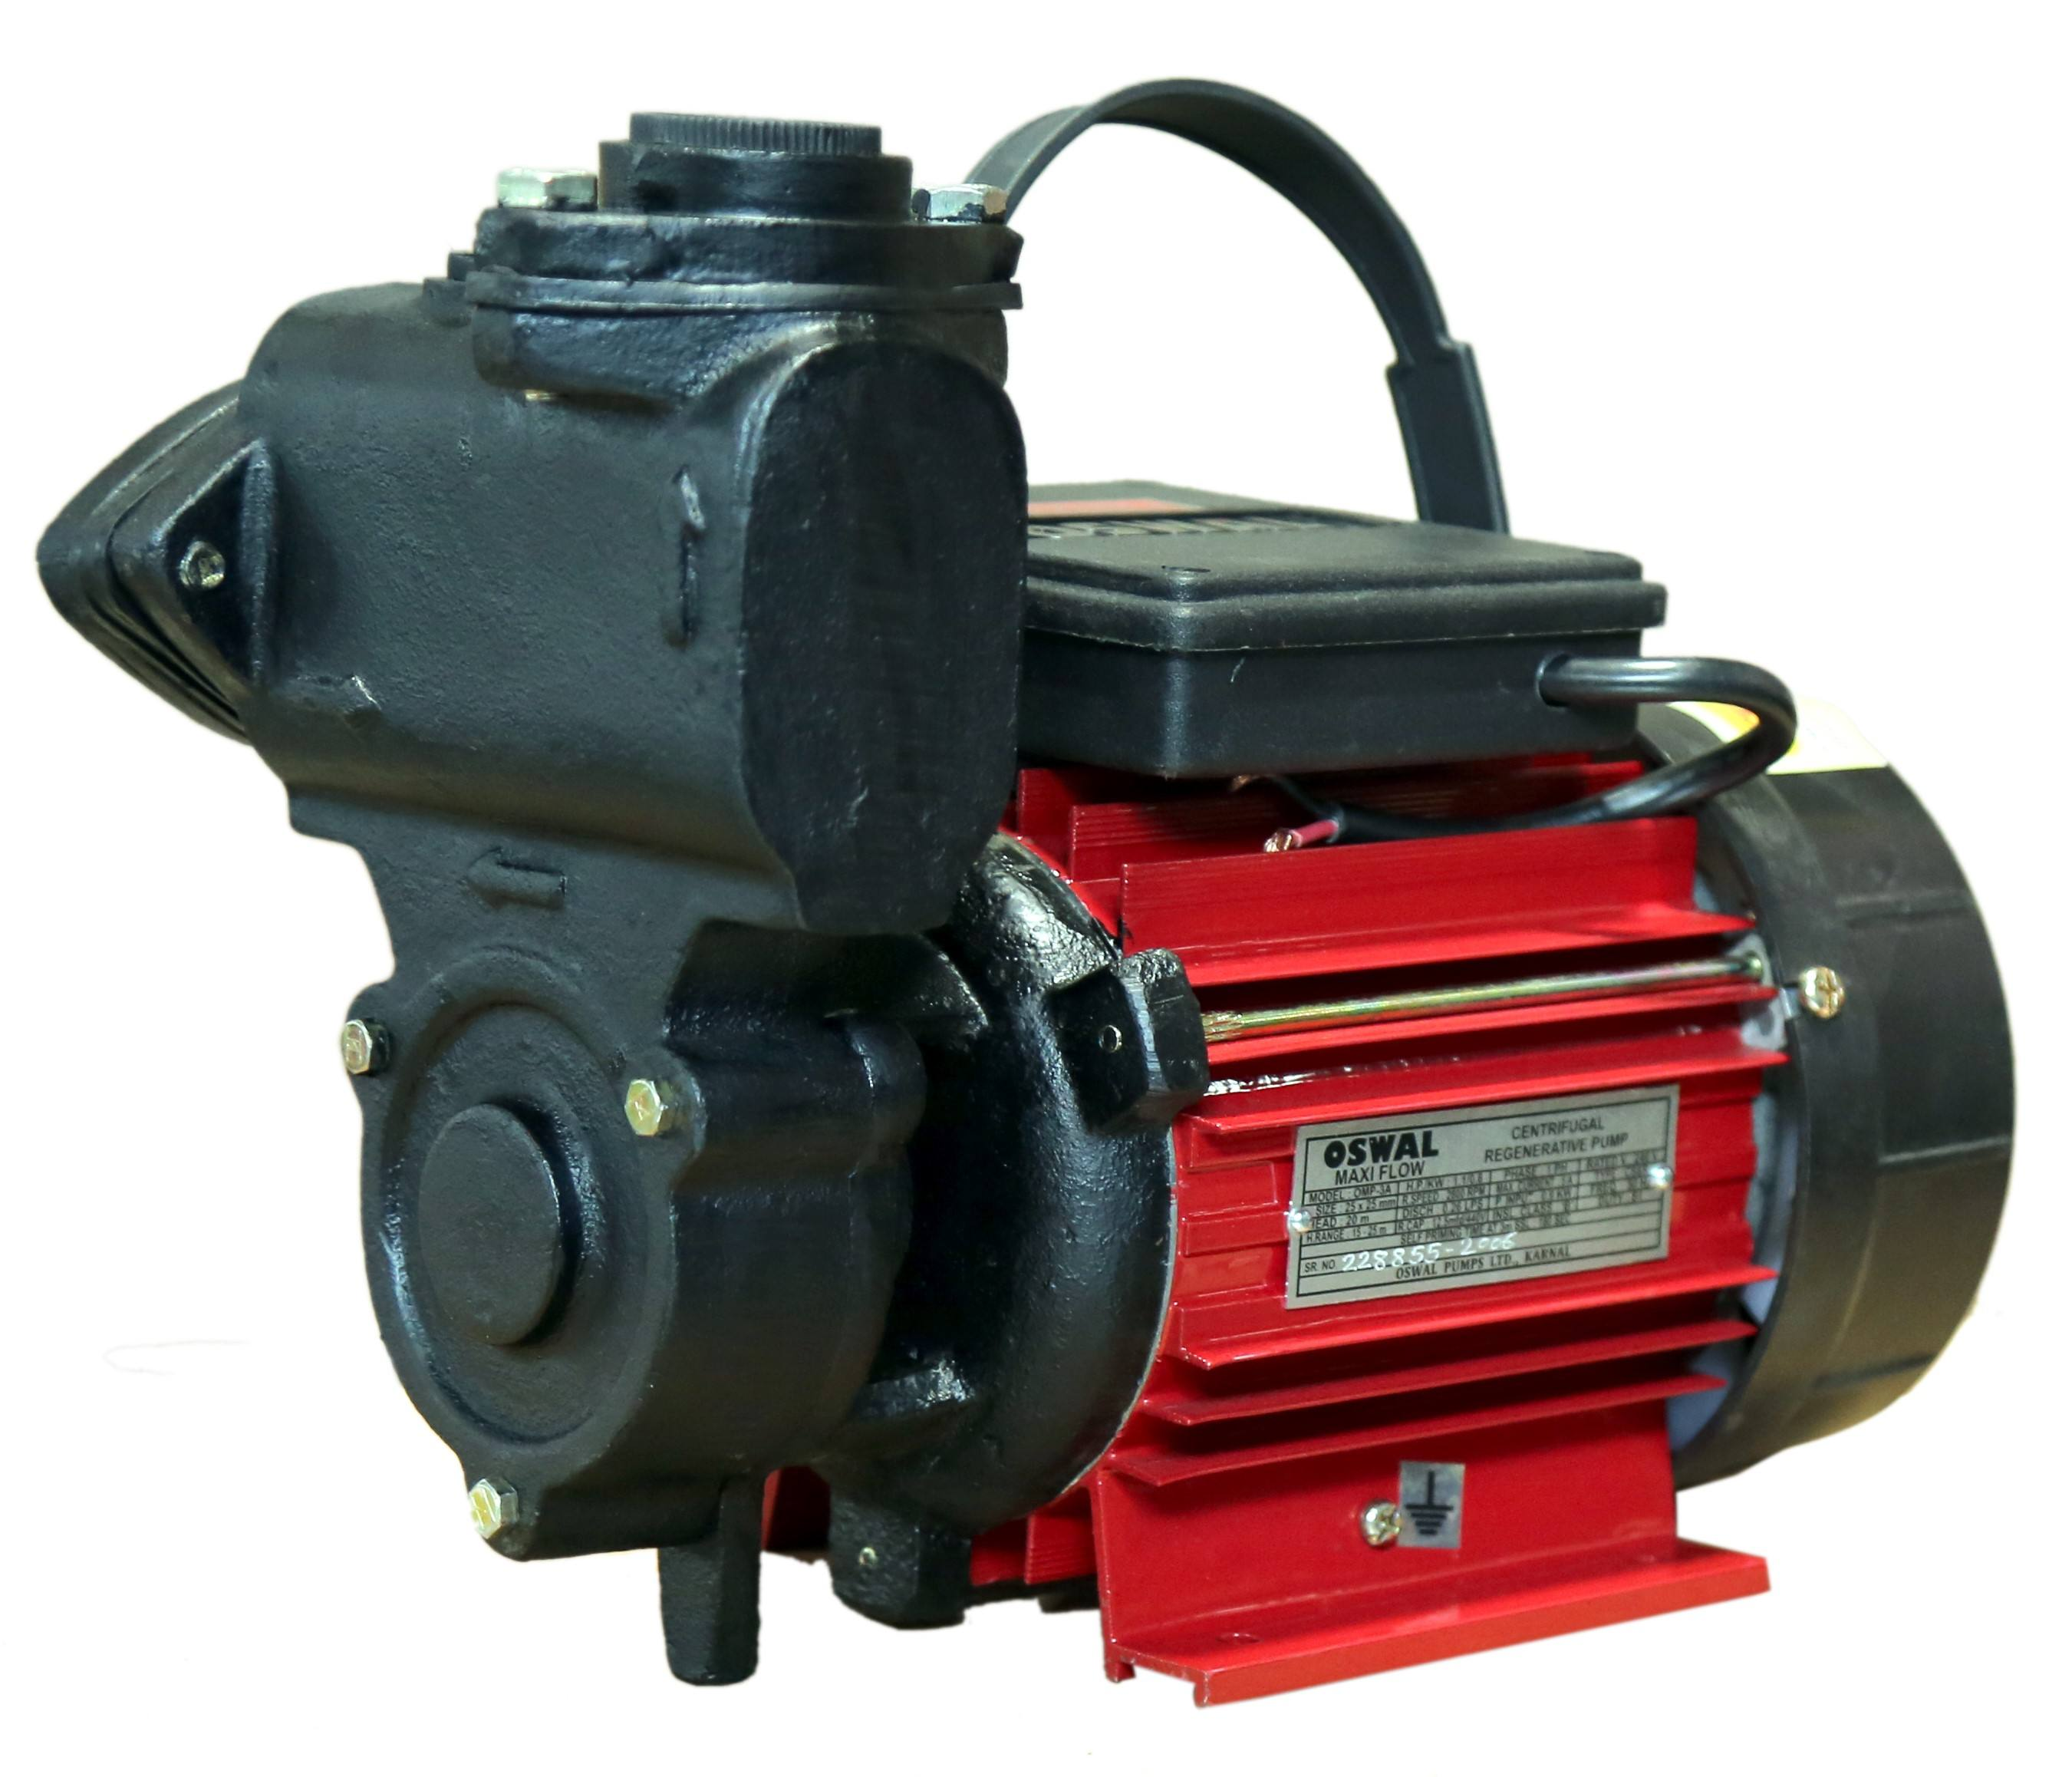 1.1HP INDIAN MONO BLOCK ELECTRIC SELF PRIMING DOMESTIC WATER PUMPS WITH 1620RPM